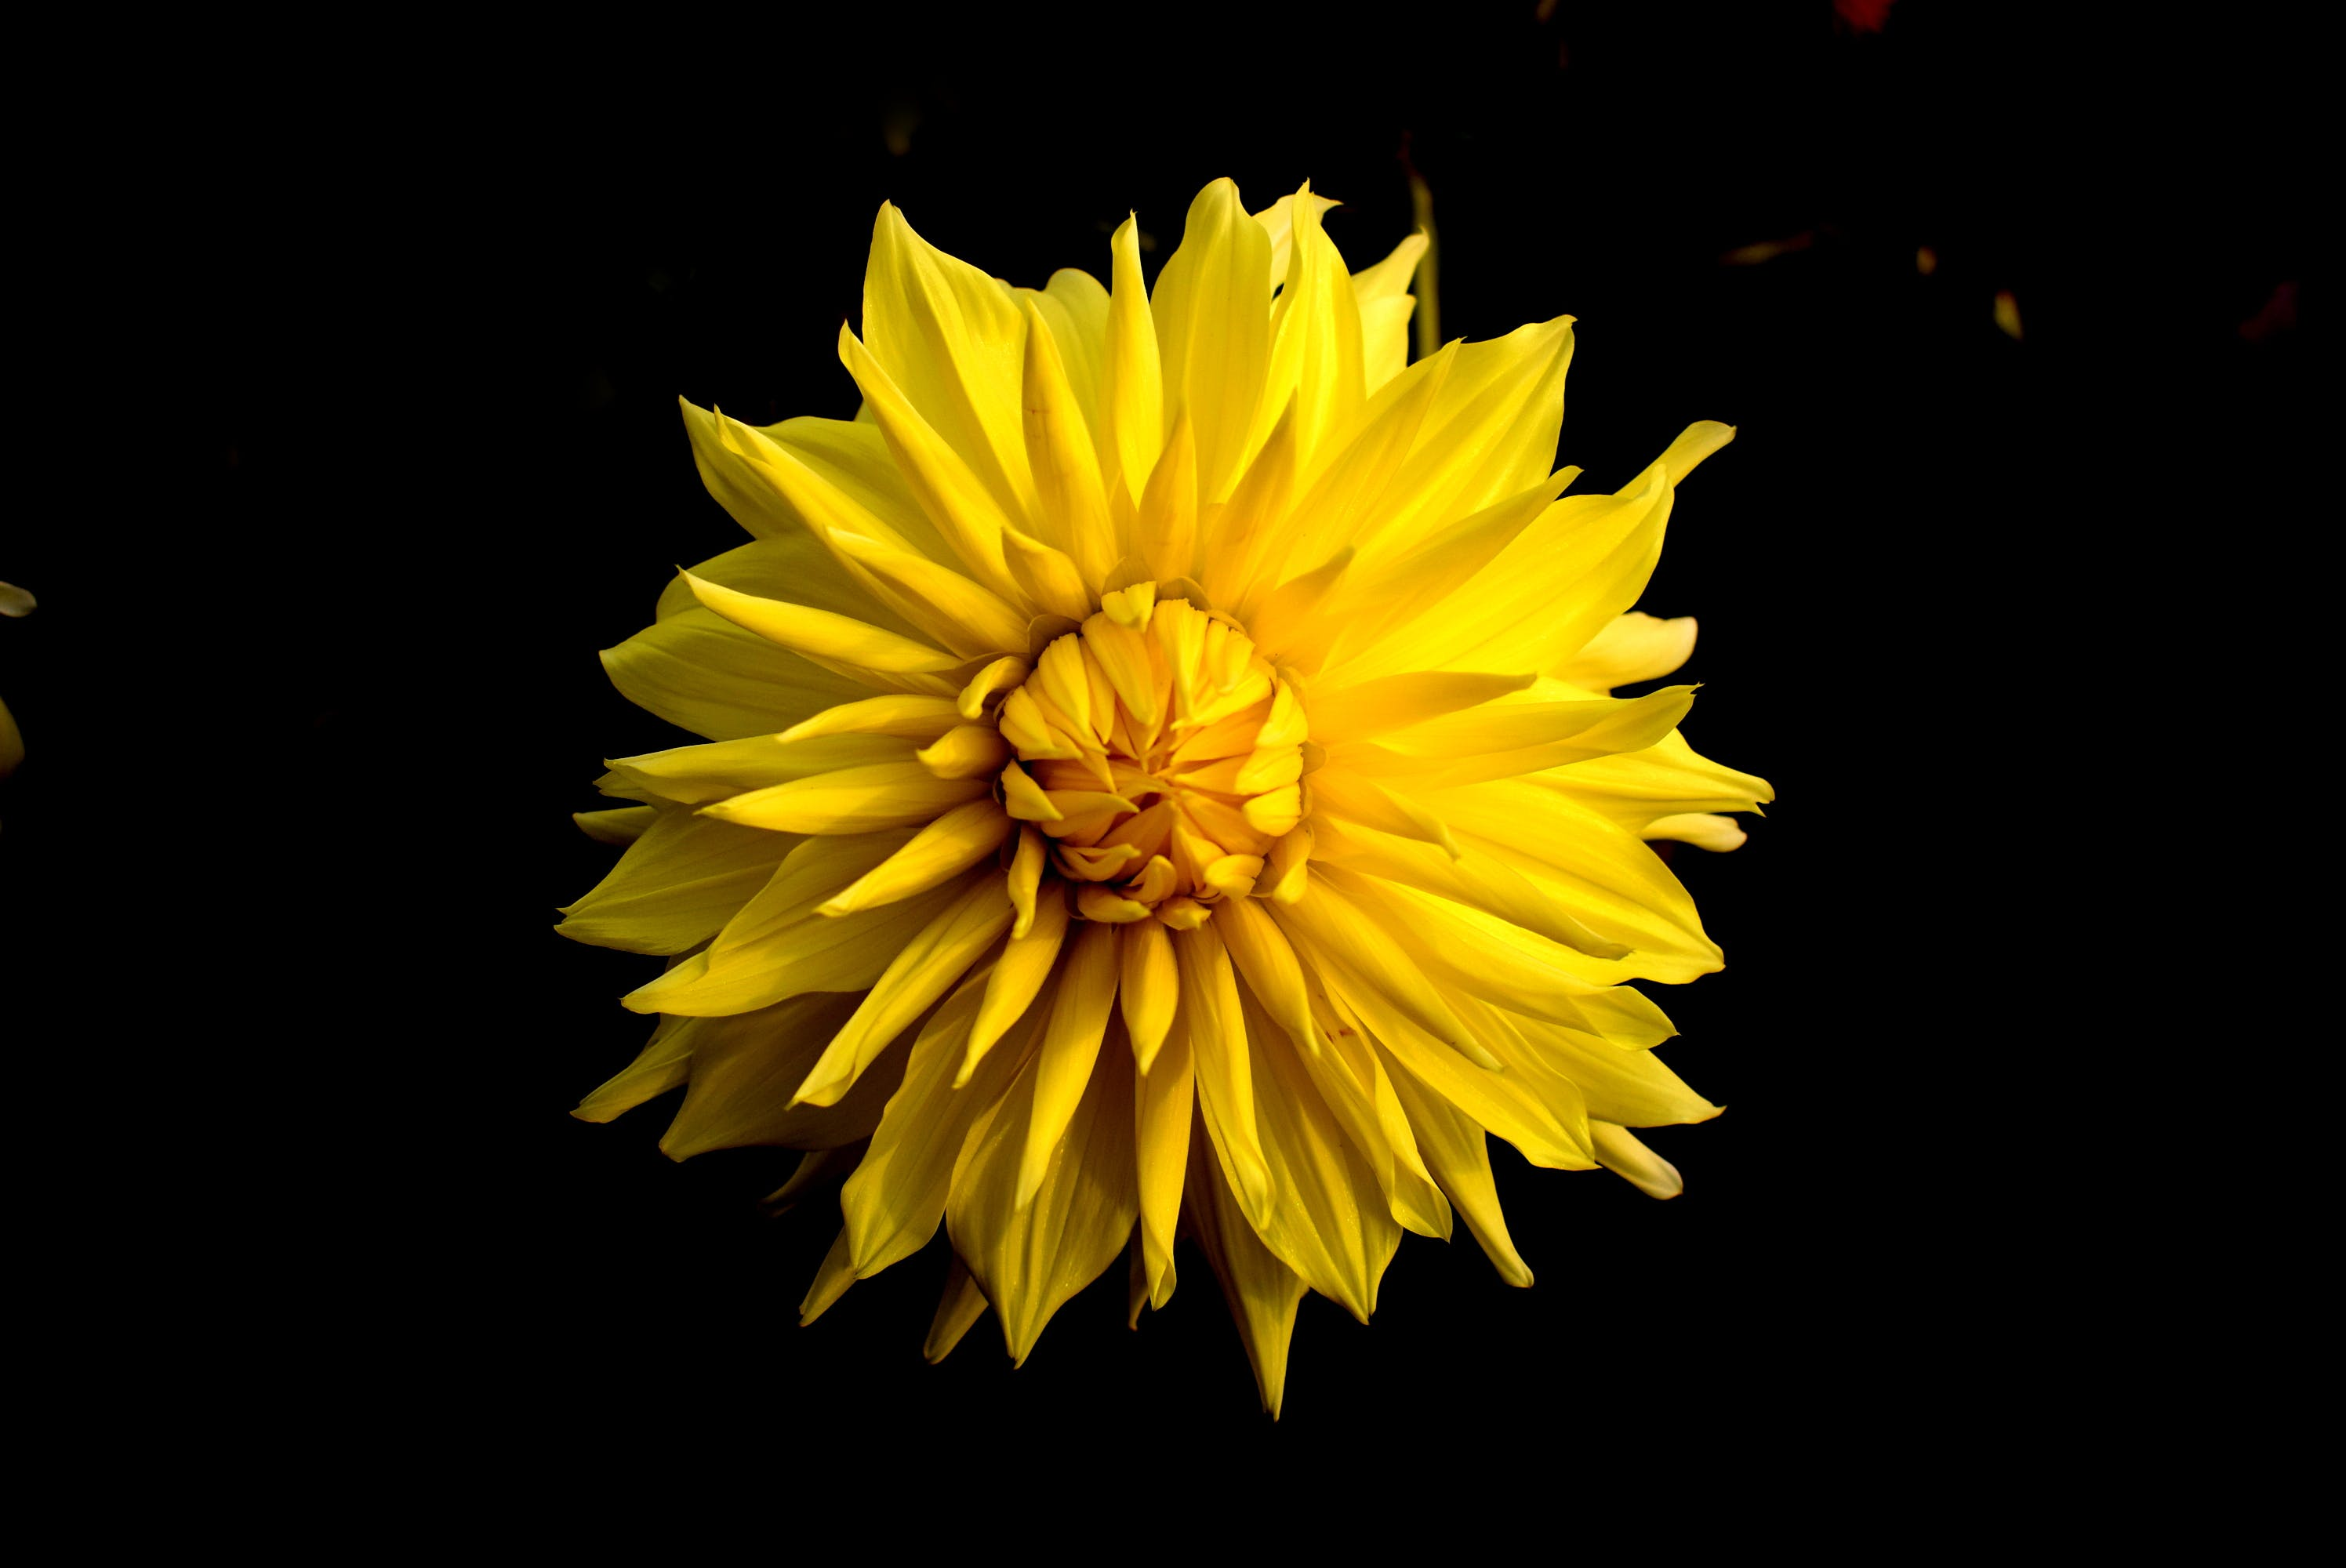 Close Up Photo of Yellow Clustered Flower